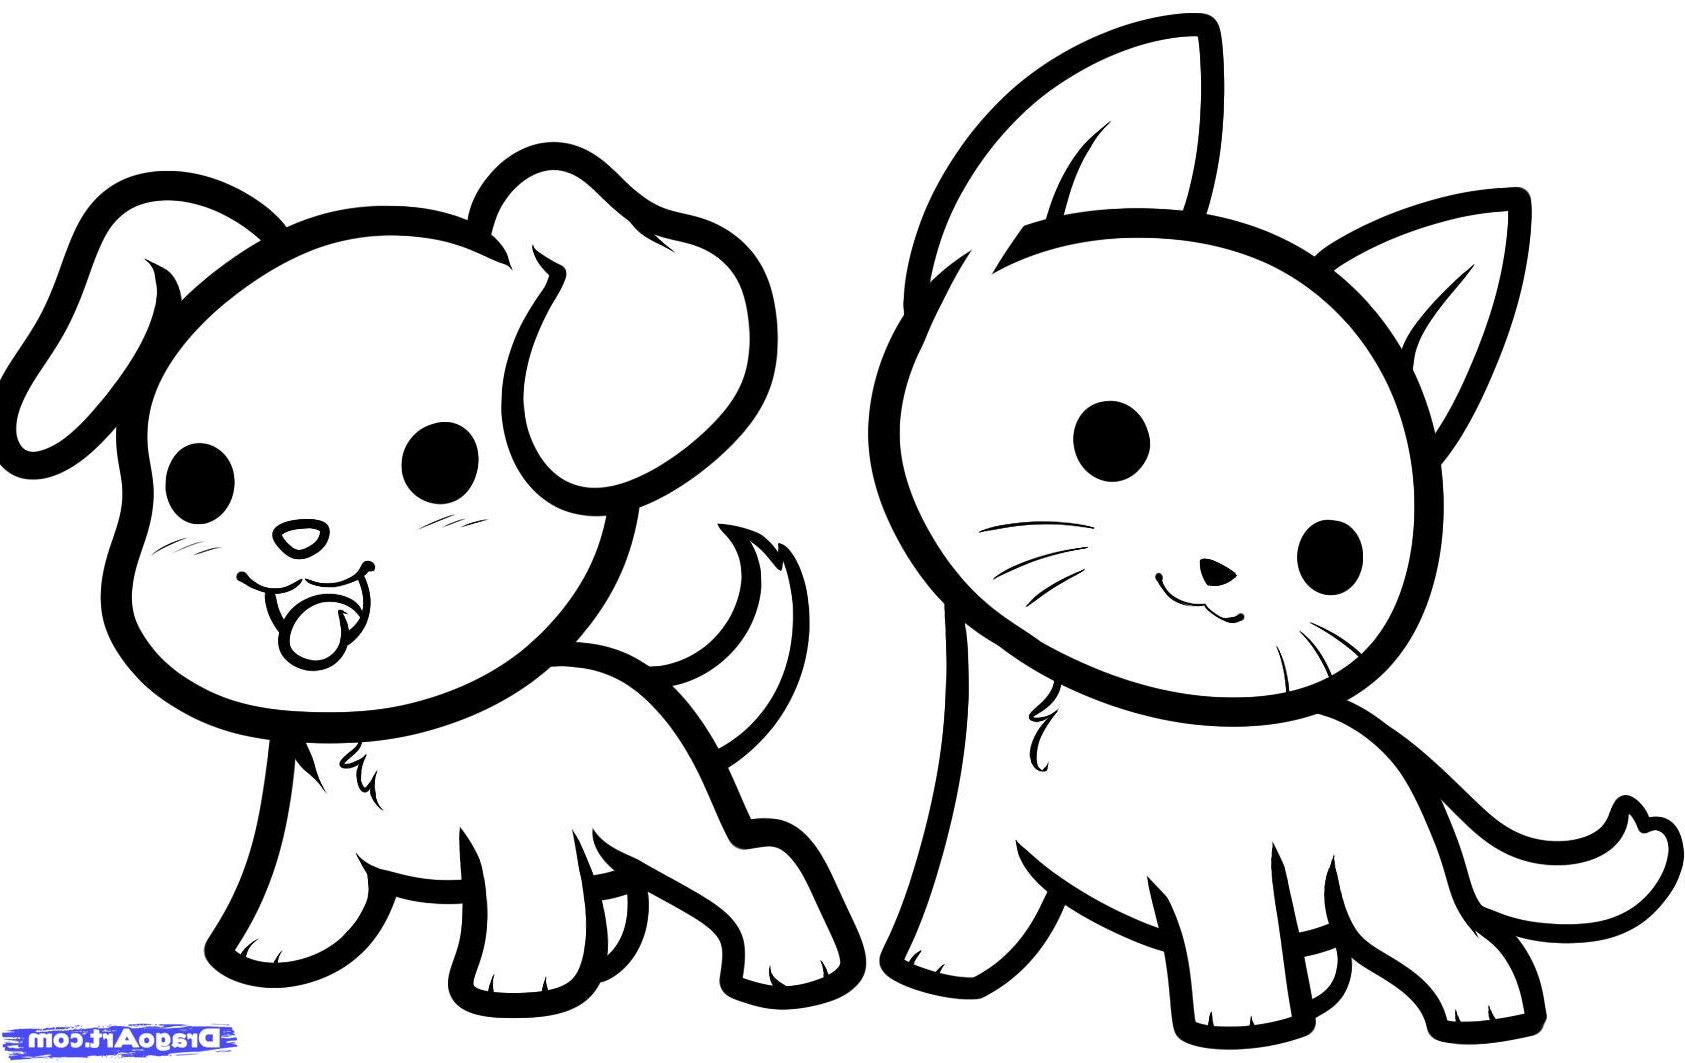 Coloring Pages Of Cute Babies Cute Easy Animal Drawings Easy